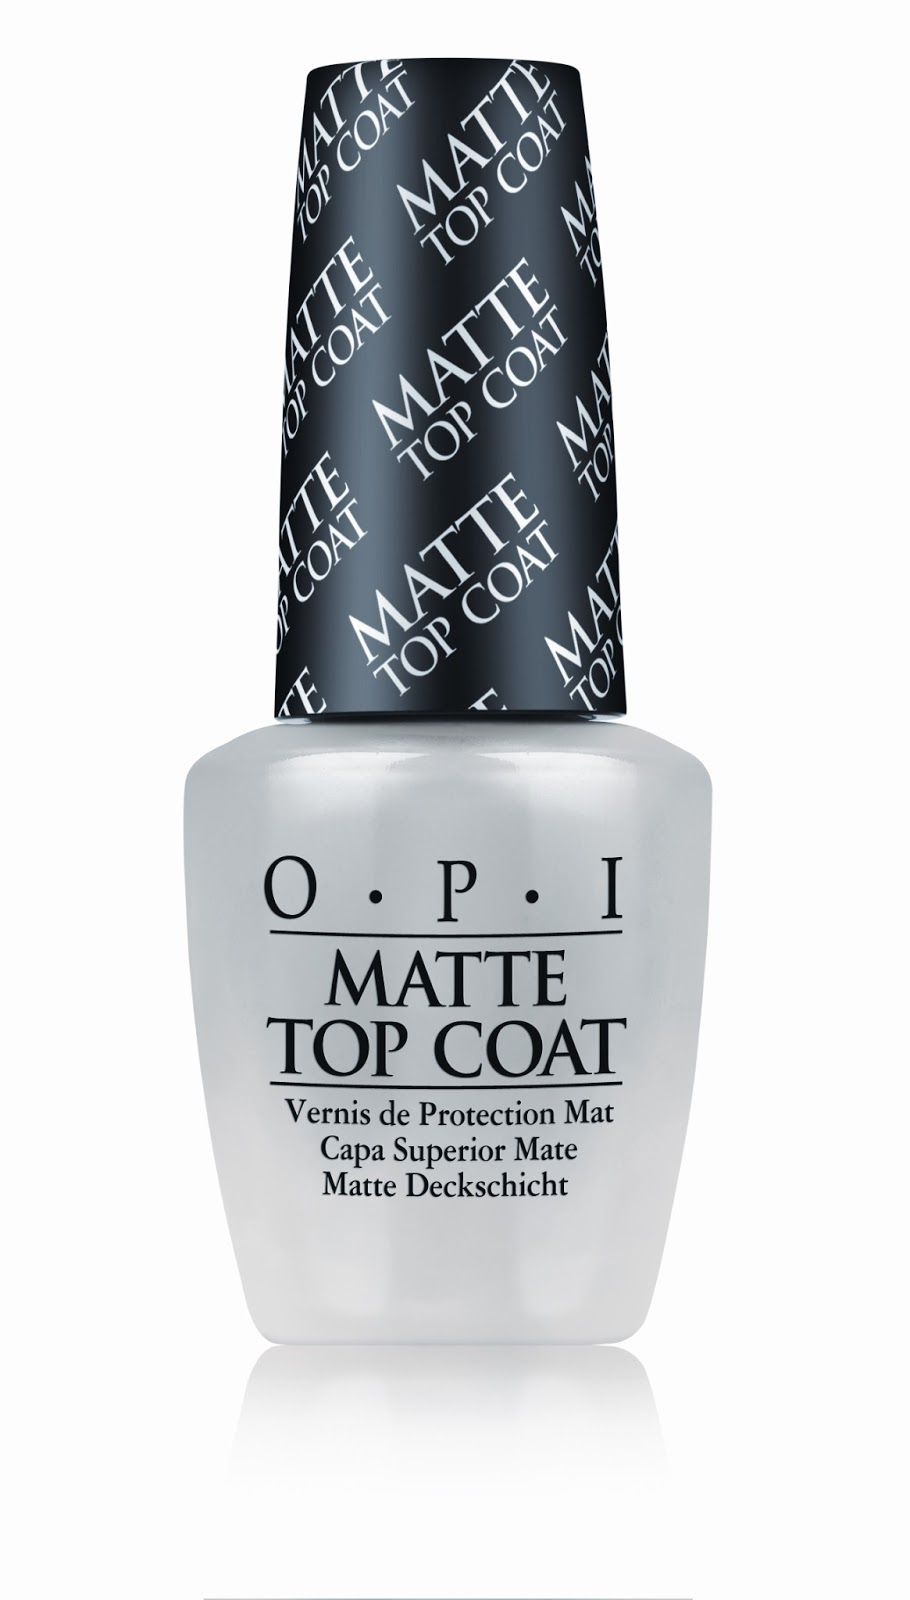 opi matte top coat press release shorties a nail and beauty blog. Black Bedroom Furniture Sets. Home Design Ideas